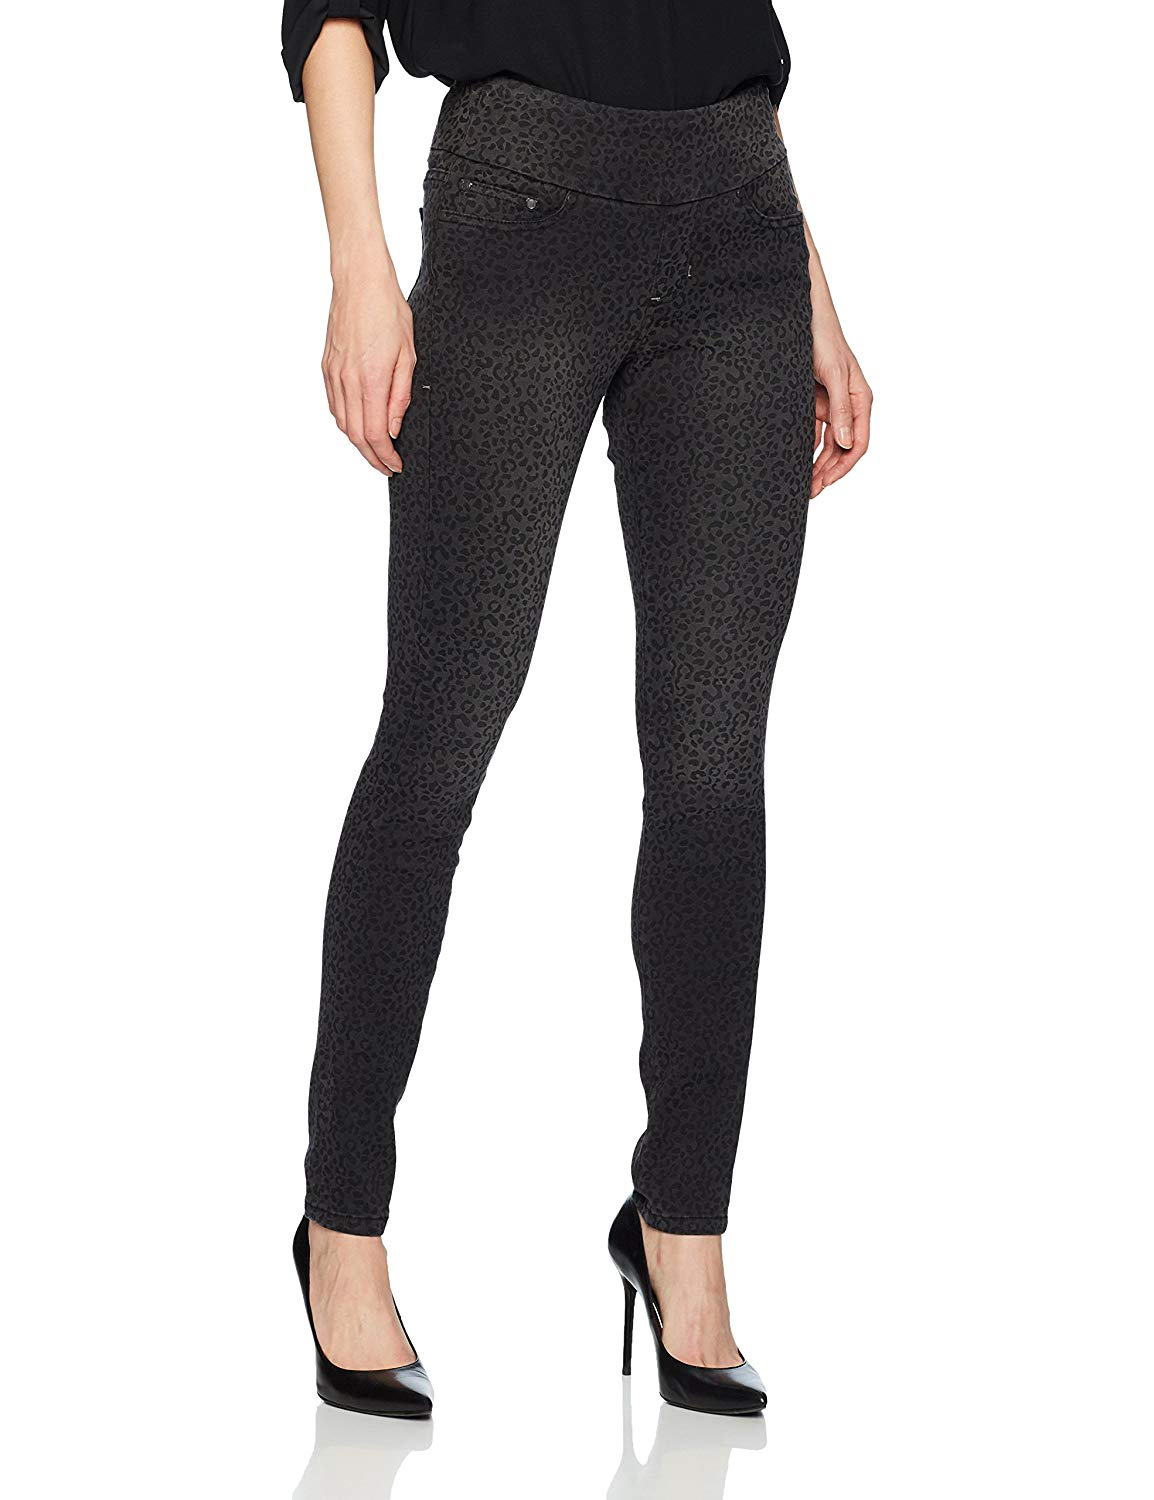 c81c2f24e0770 Cheap Skinny Jean Styles, find Skinny Jean Styles deals on line at ...